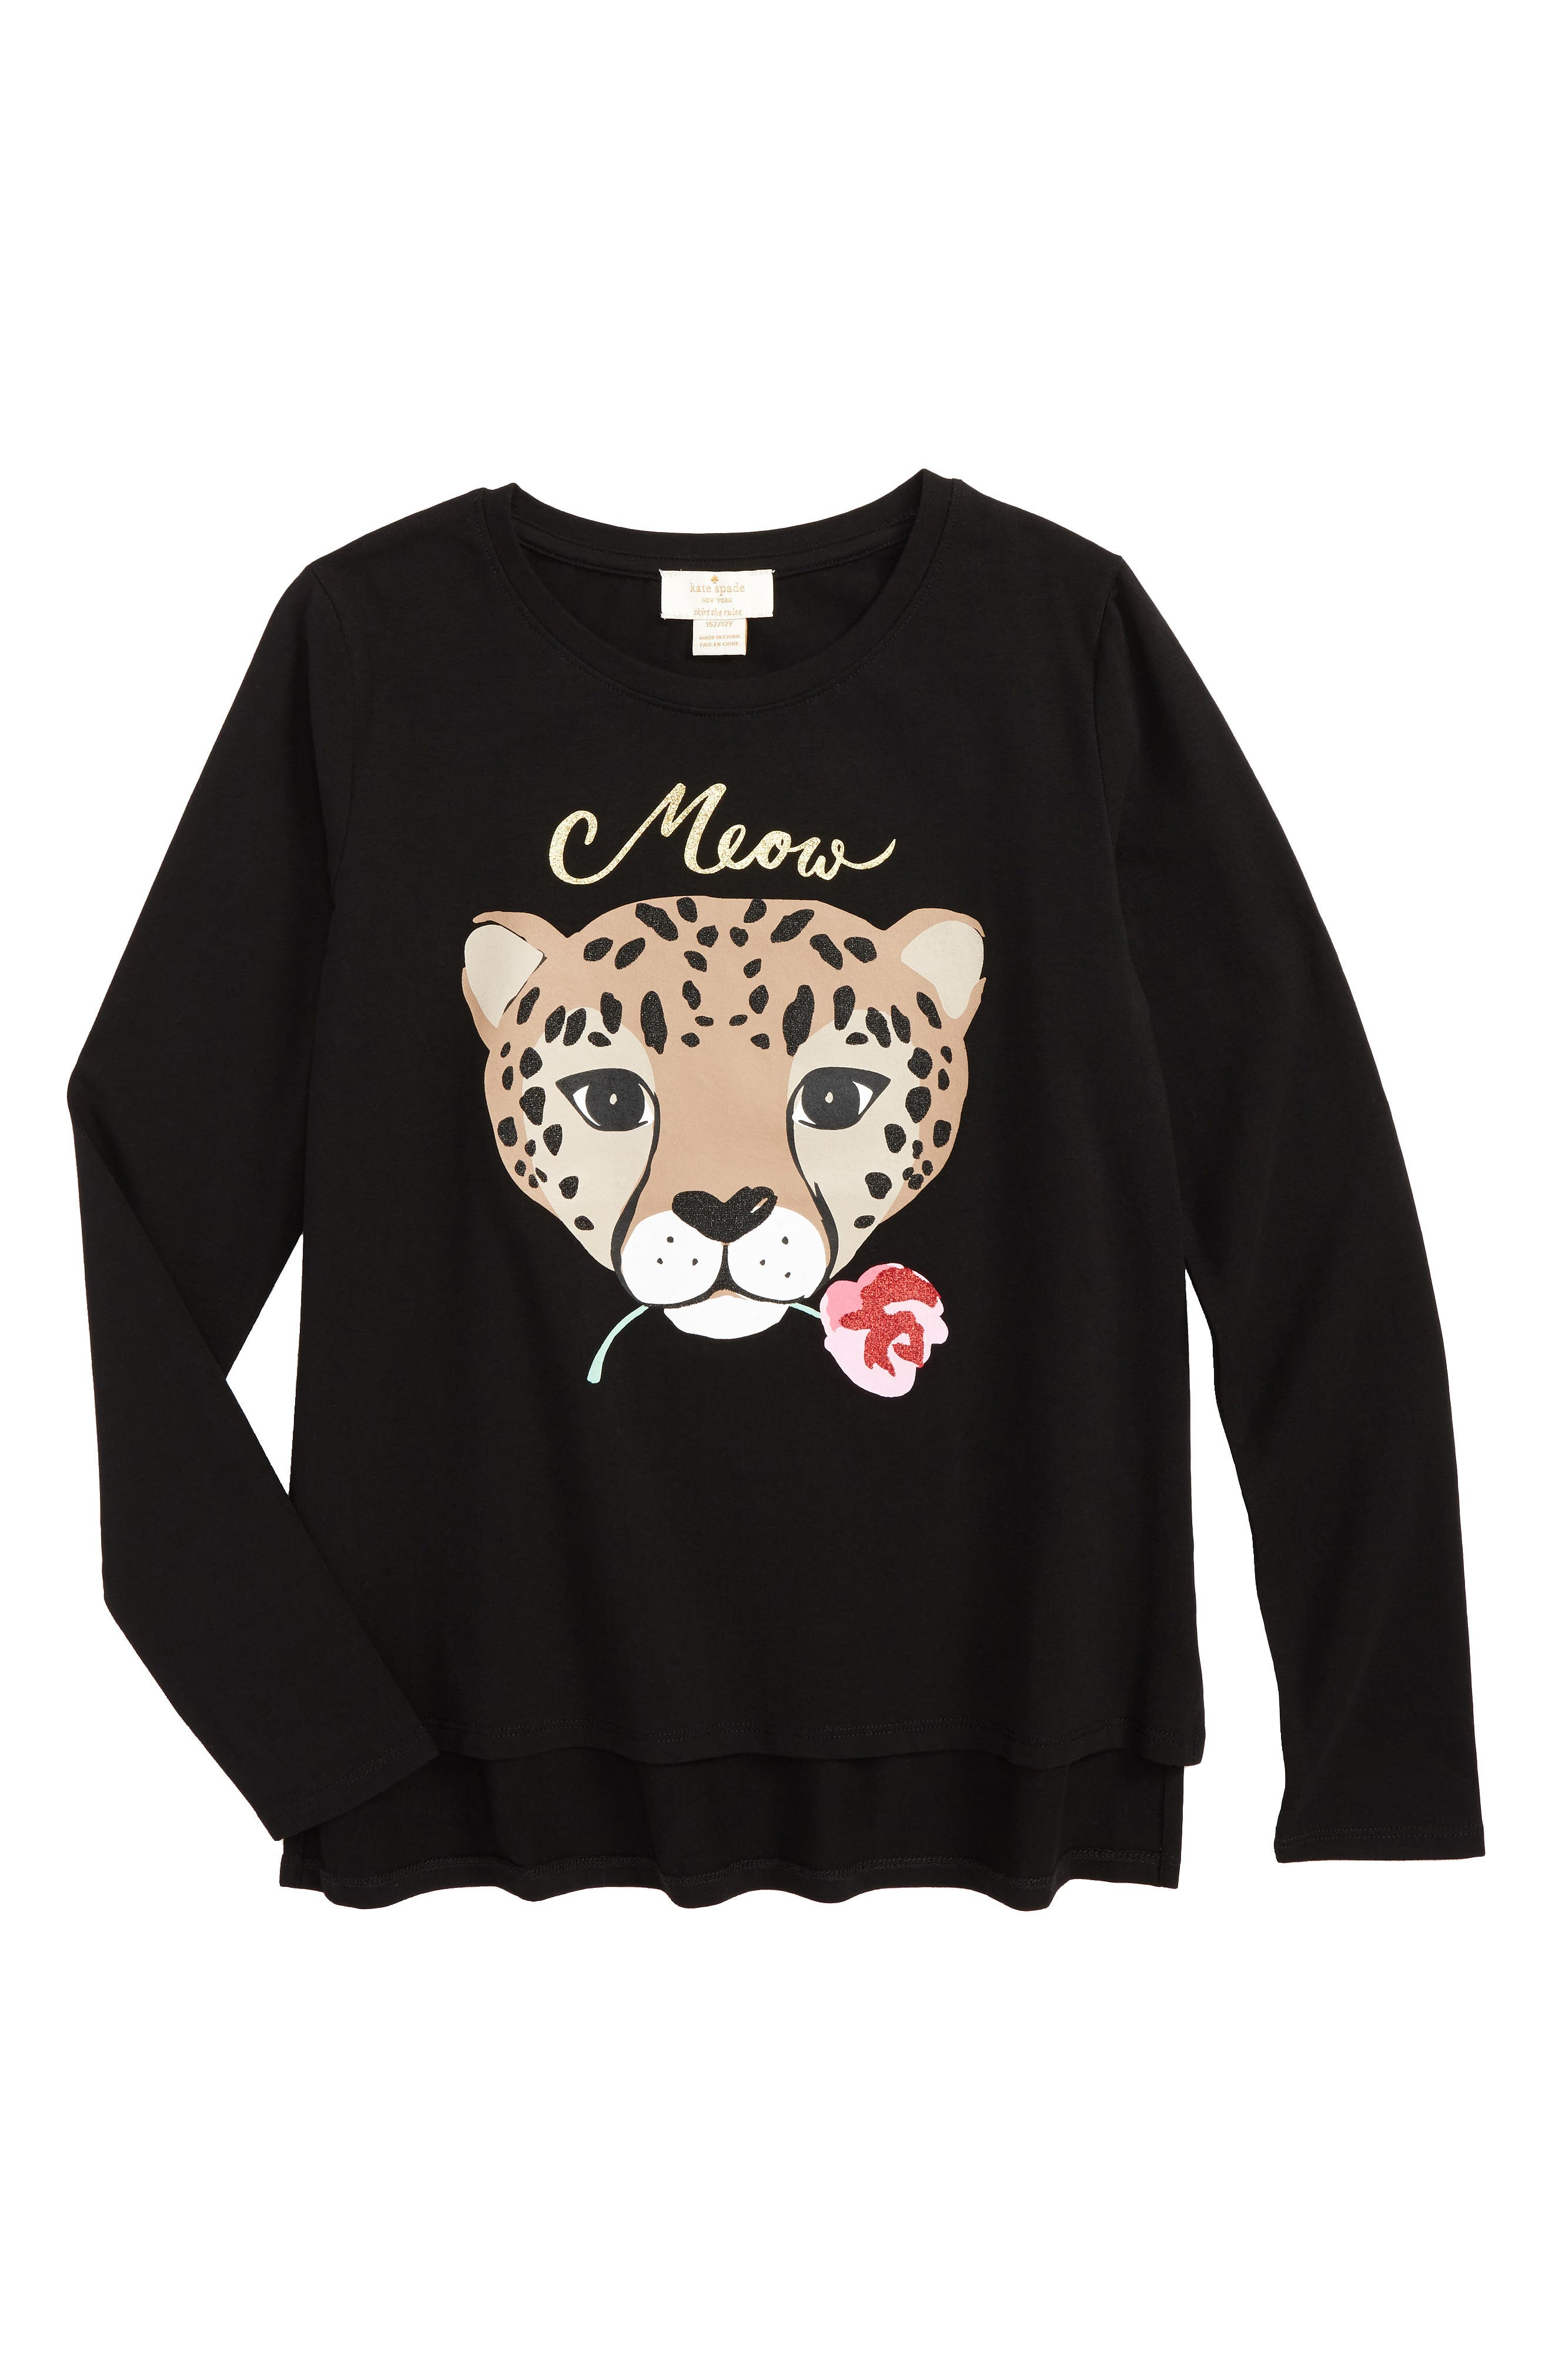 Alternate Image 1 Selected - kate spade new york meow tee (Big Girls)